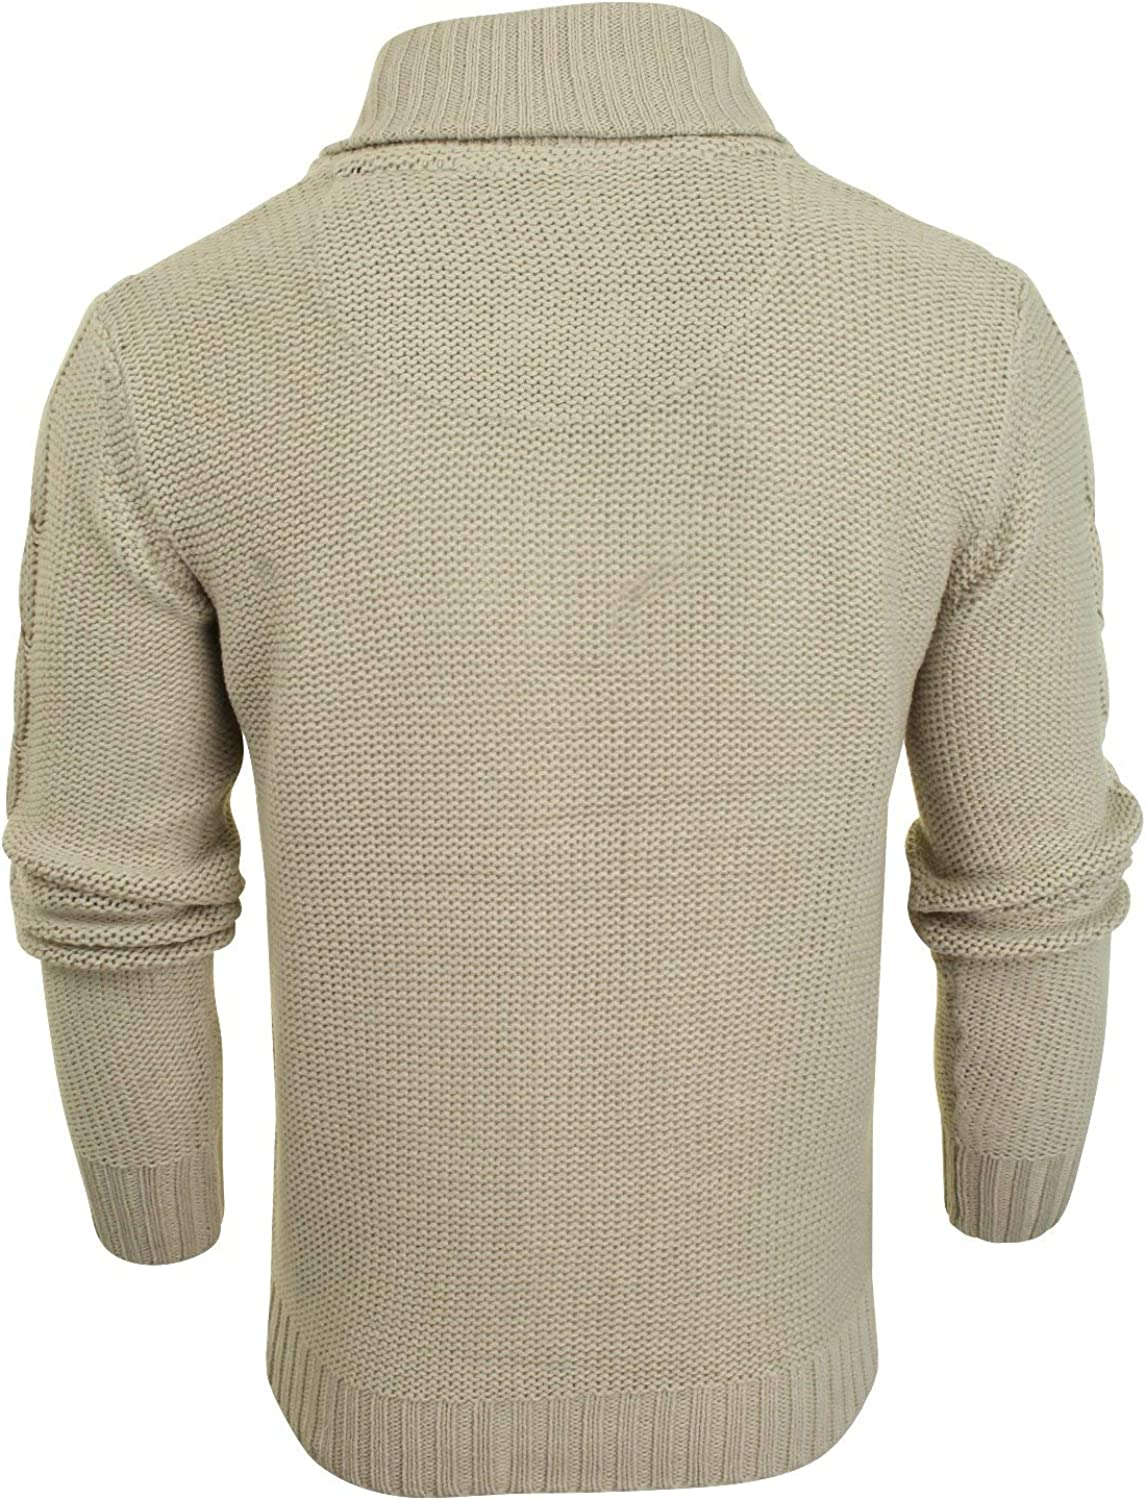 Brave Soul Mens Button-up Cardigan with Shawl Neck /& Cable Knit